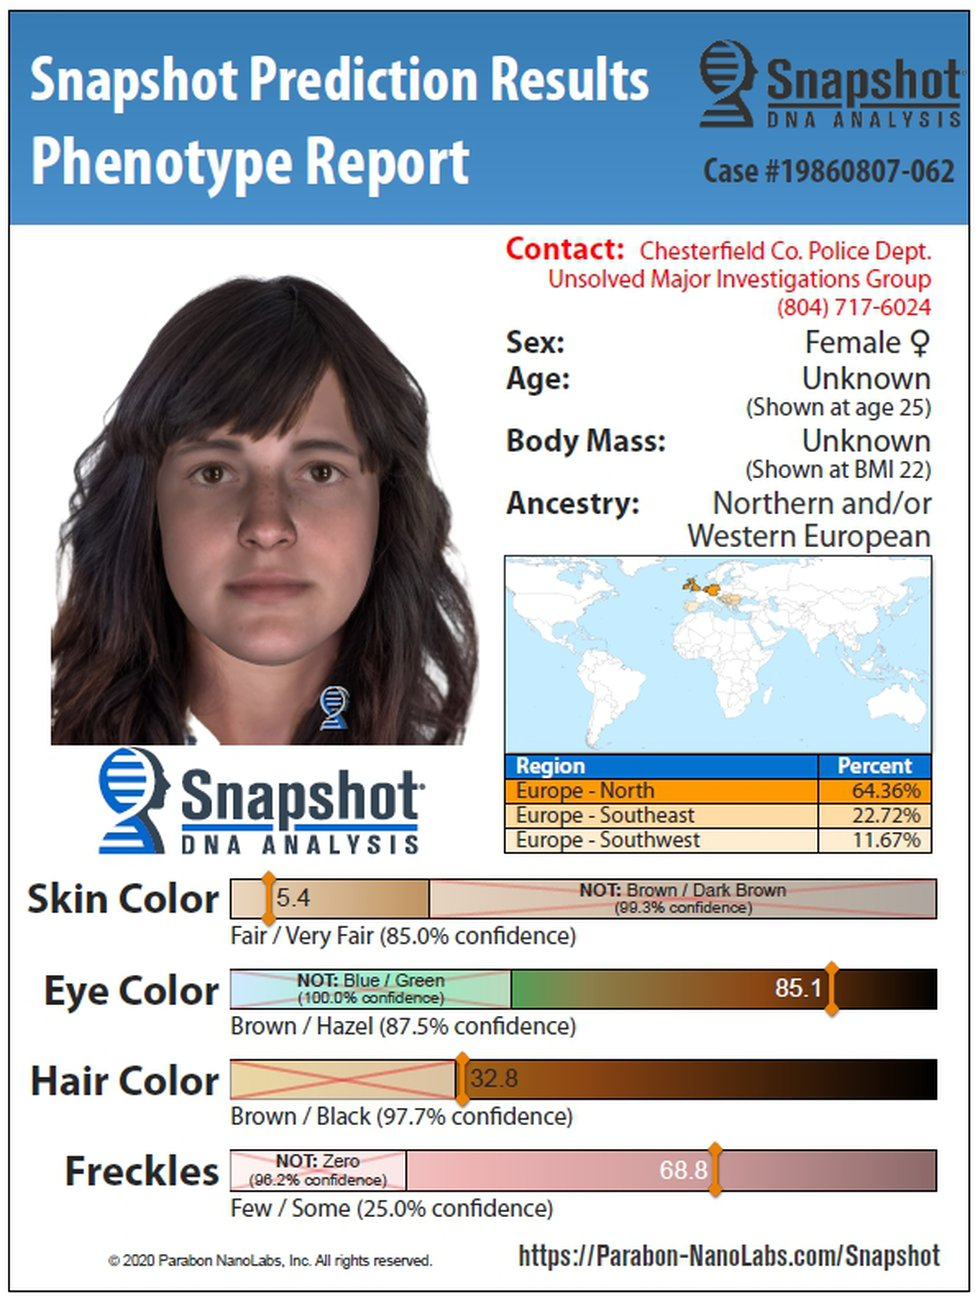 Using DNA evidence from this investigation, Snapshot produced trait predictions for the unknown...